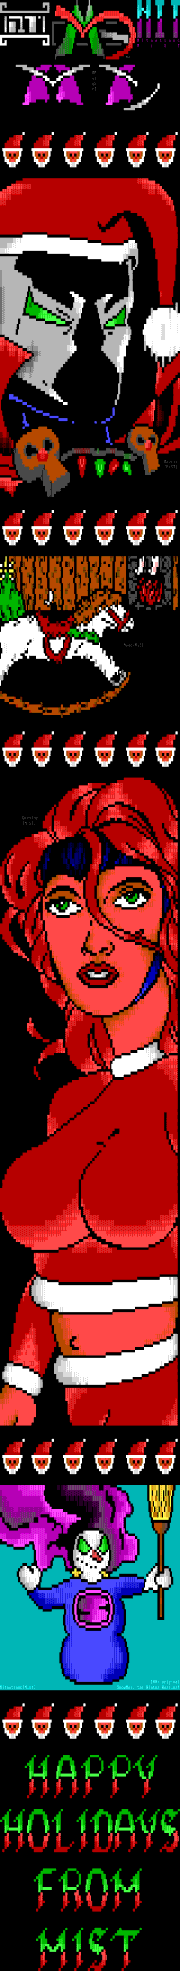 Happy Holidays from MiST ANSI! by MA, MZ, QT, Nit